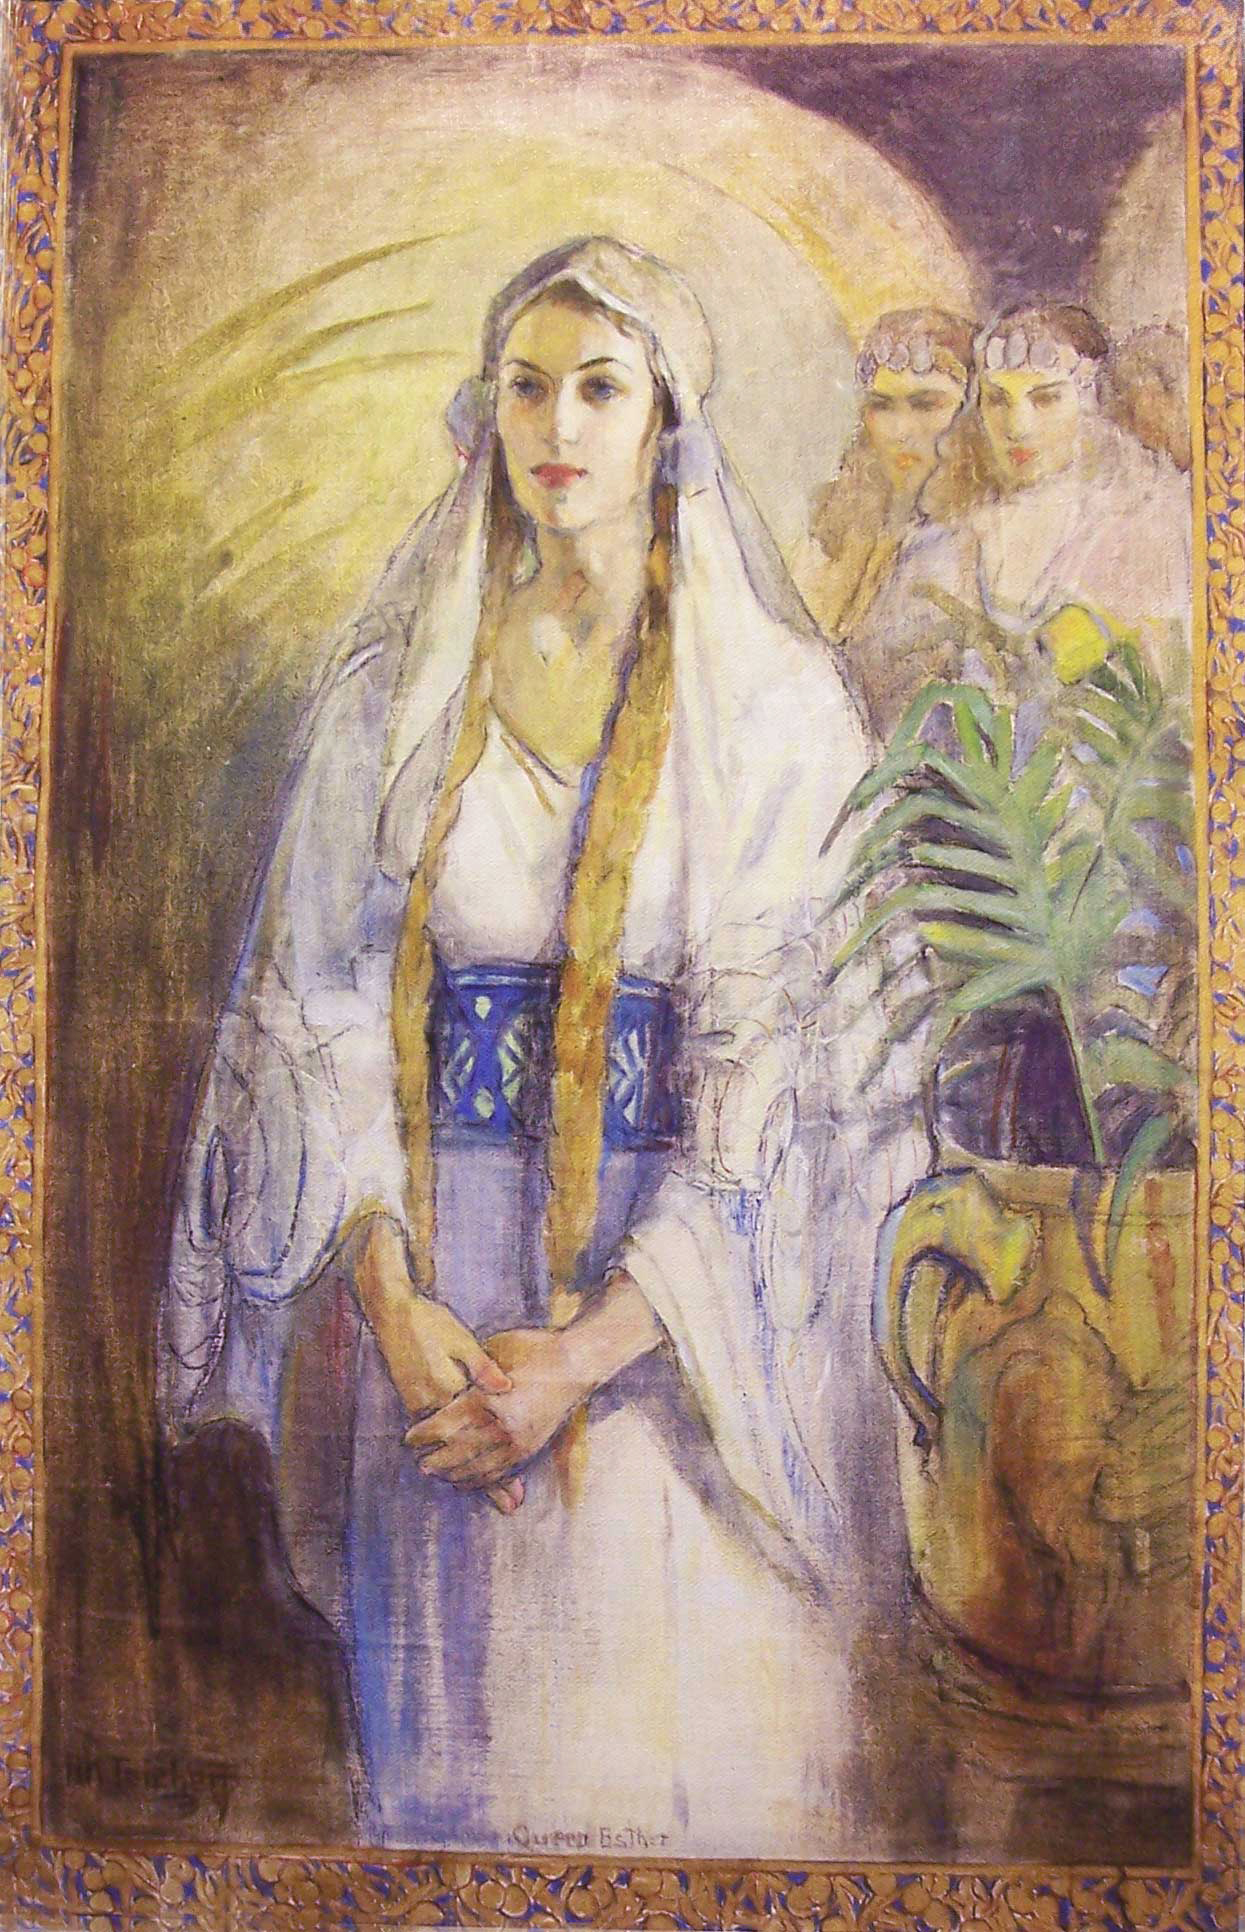 Teichert-Queen-Esther-v2.1